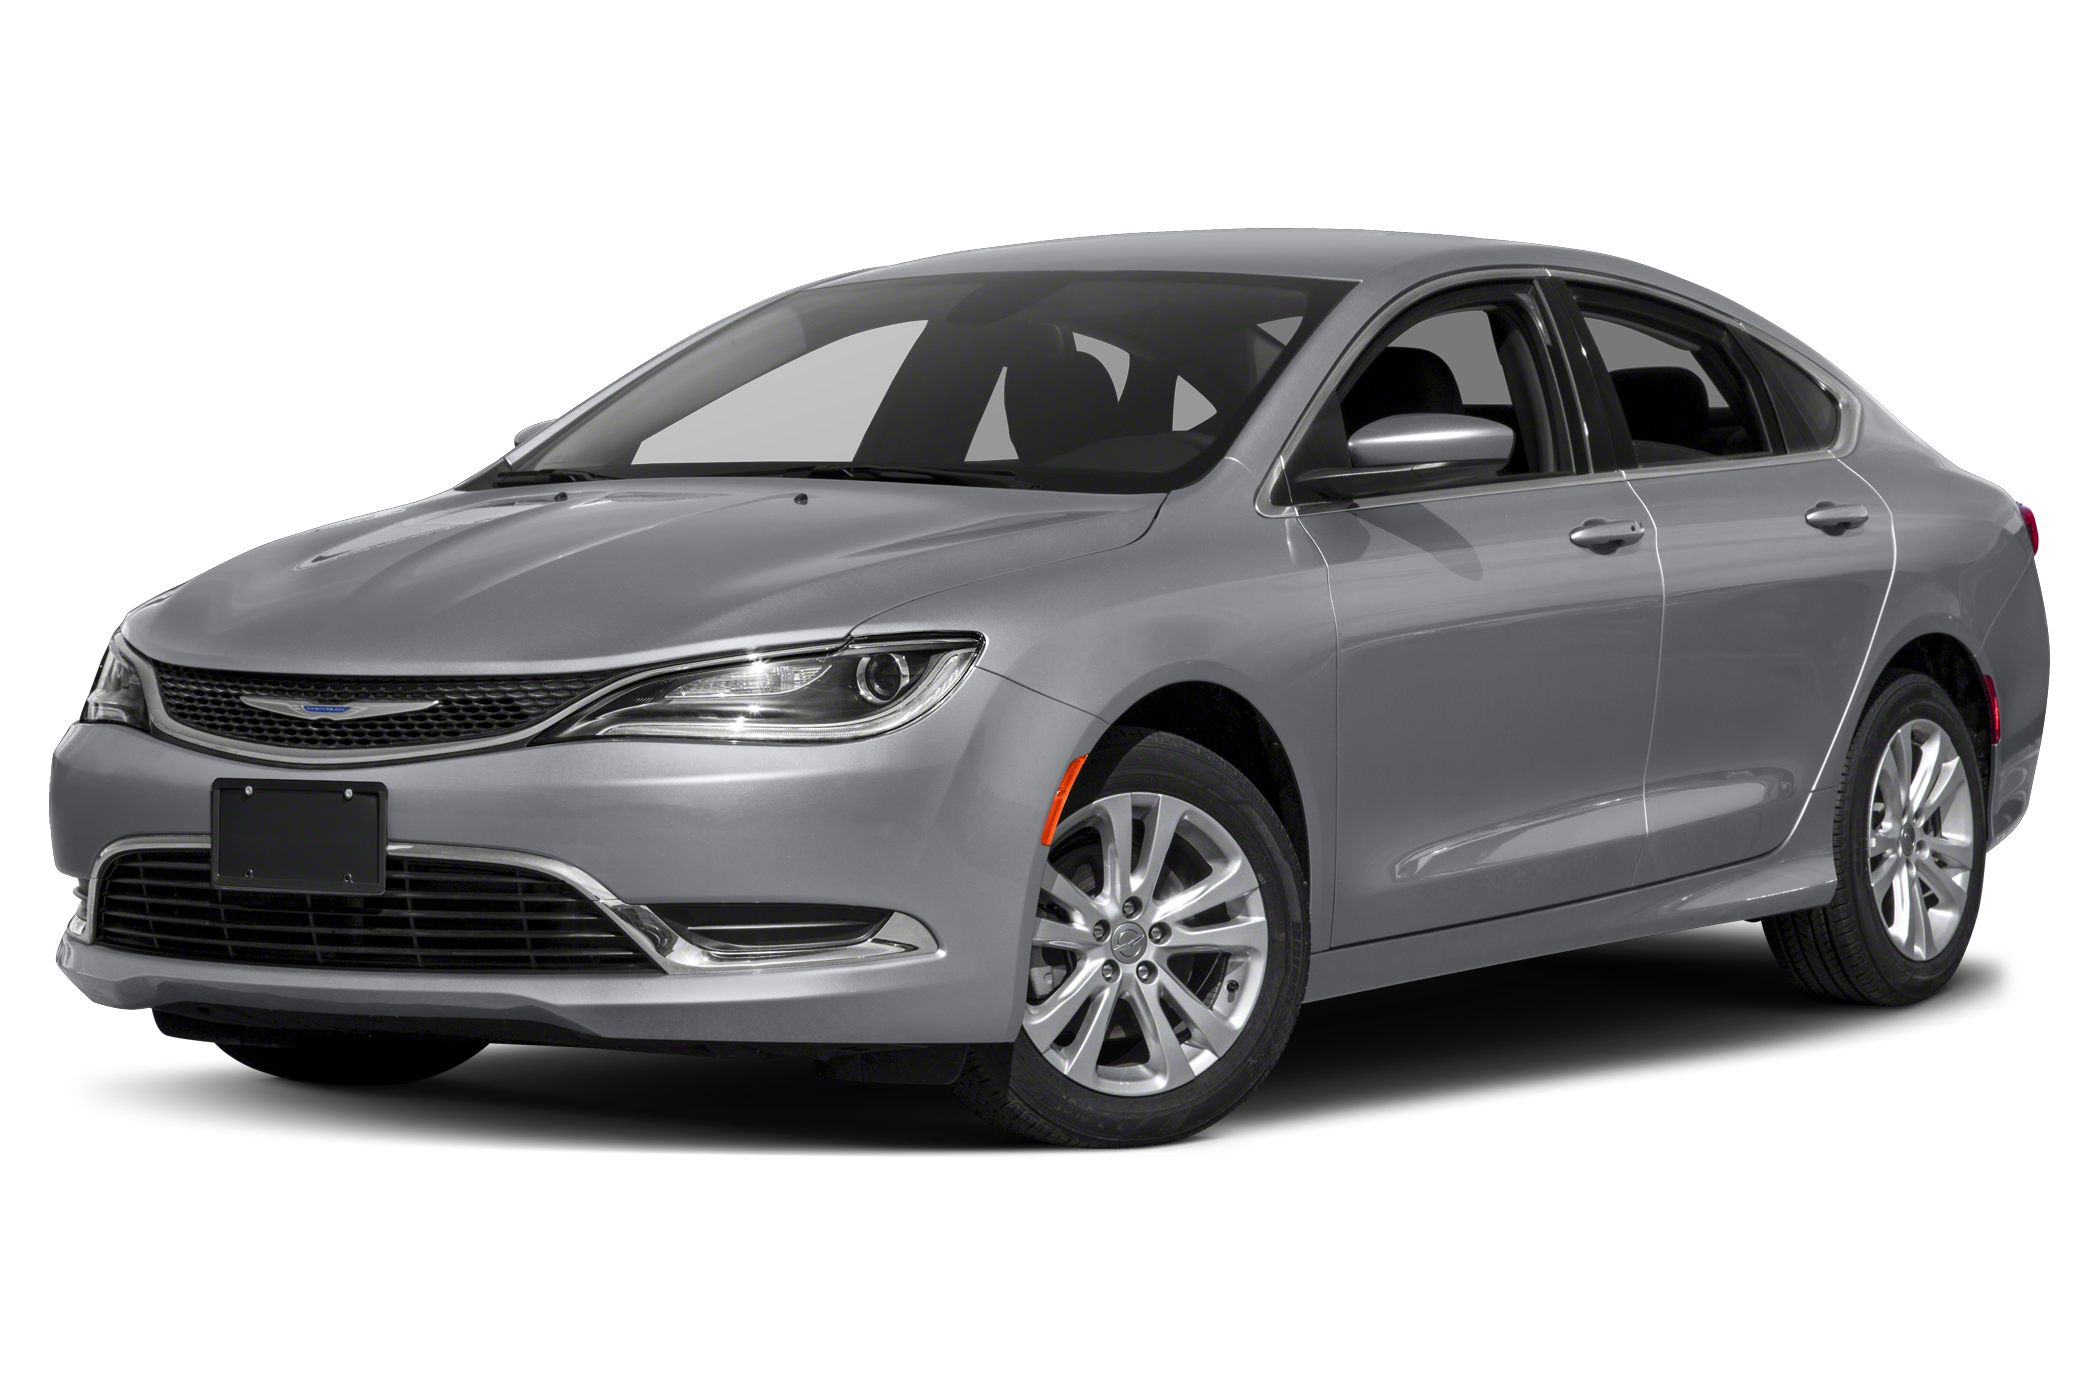 2015 chrysler 200 limited for sale vin 1c3cccab0fn